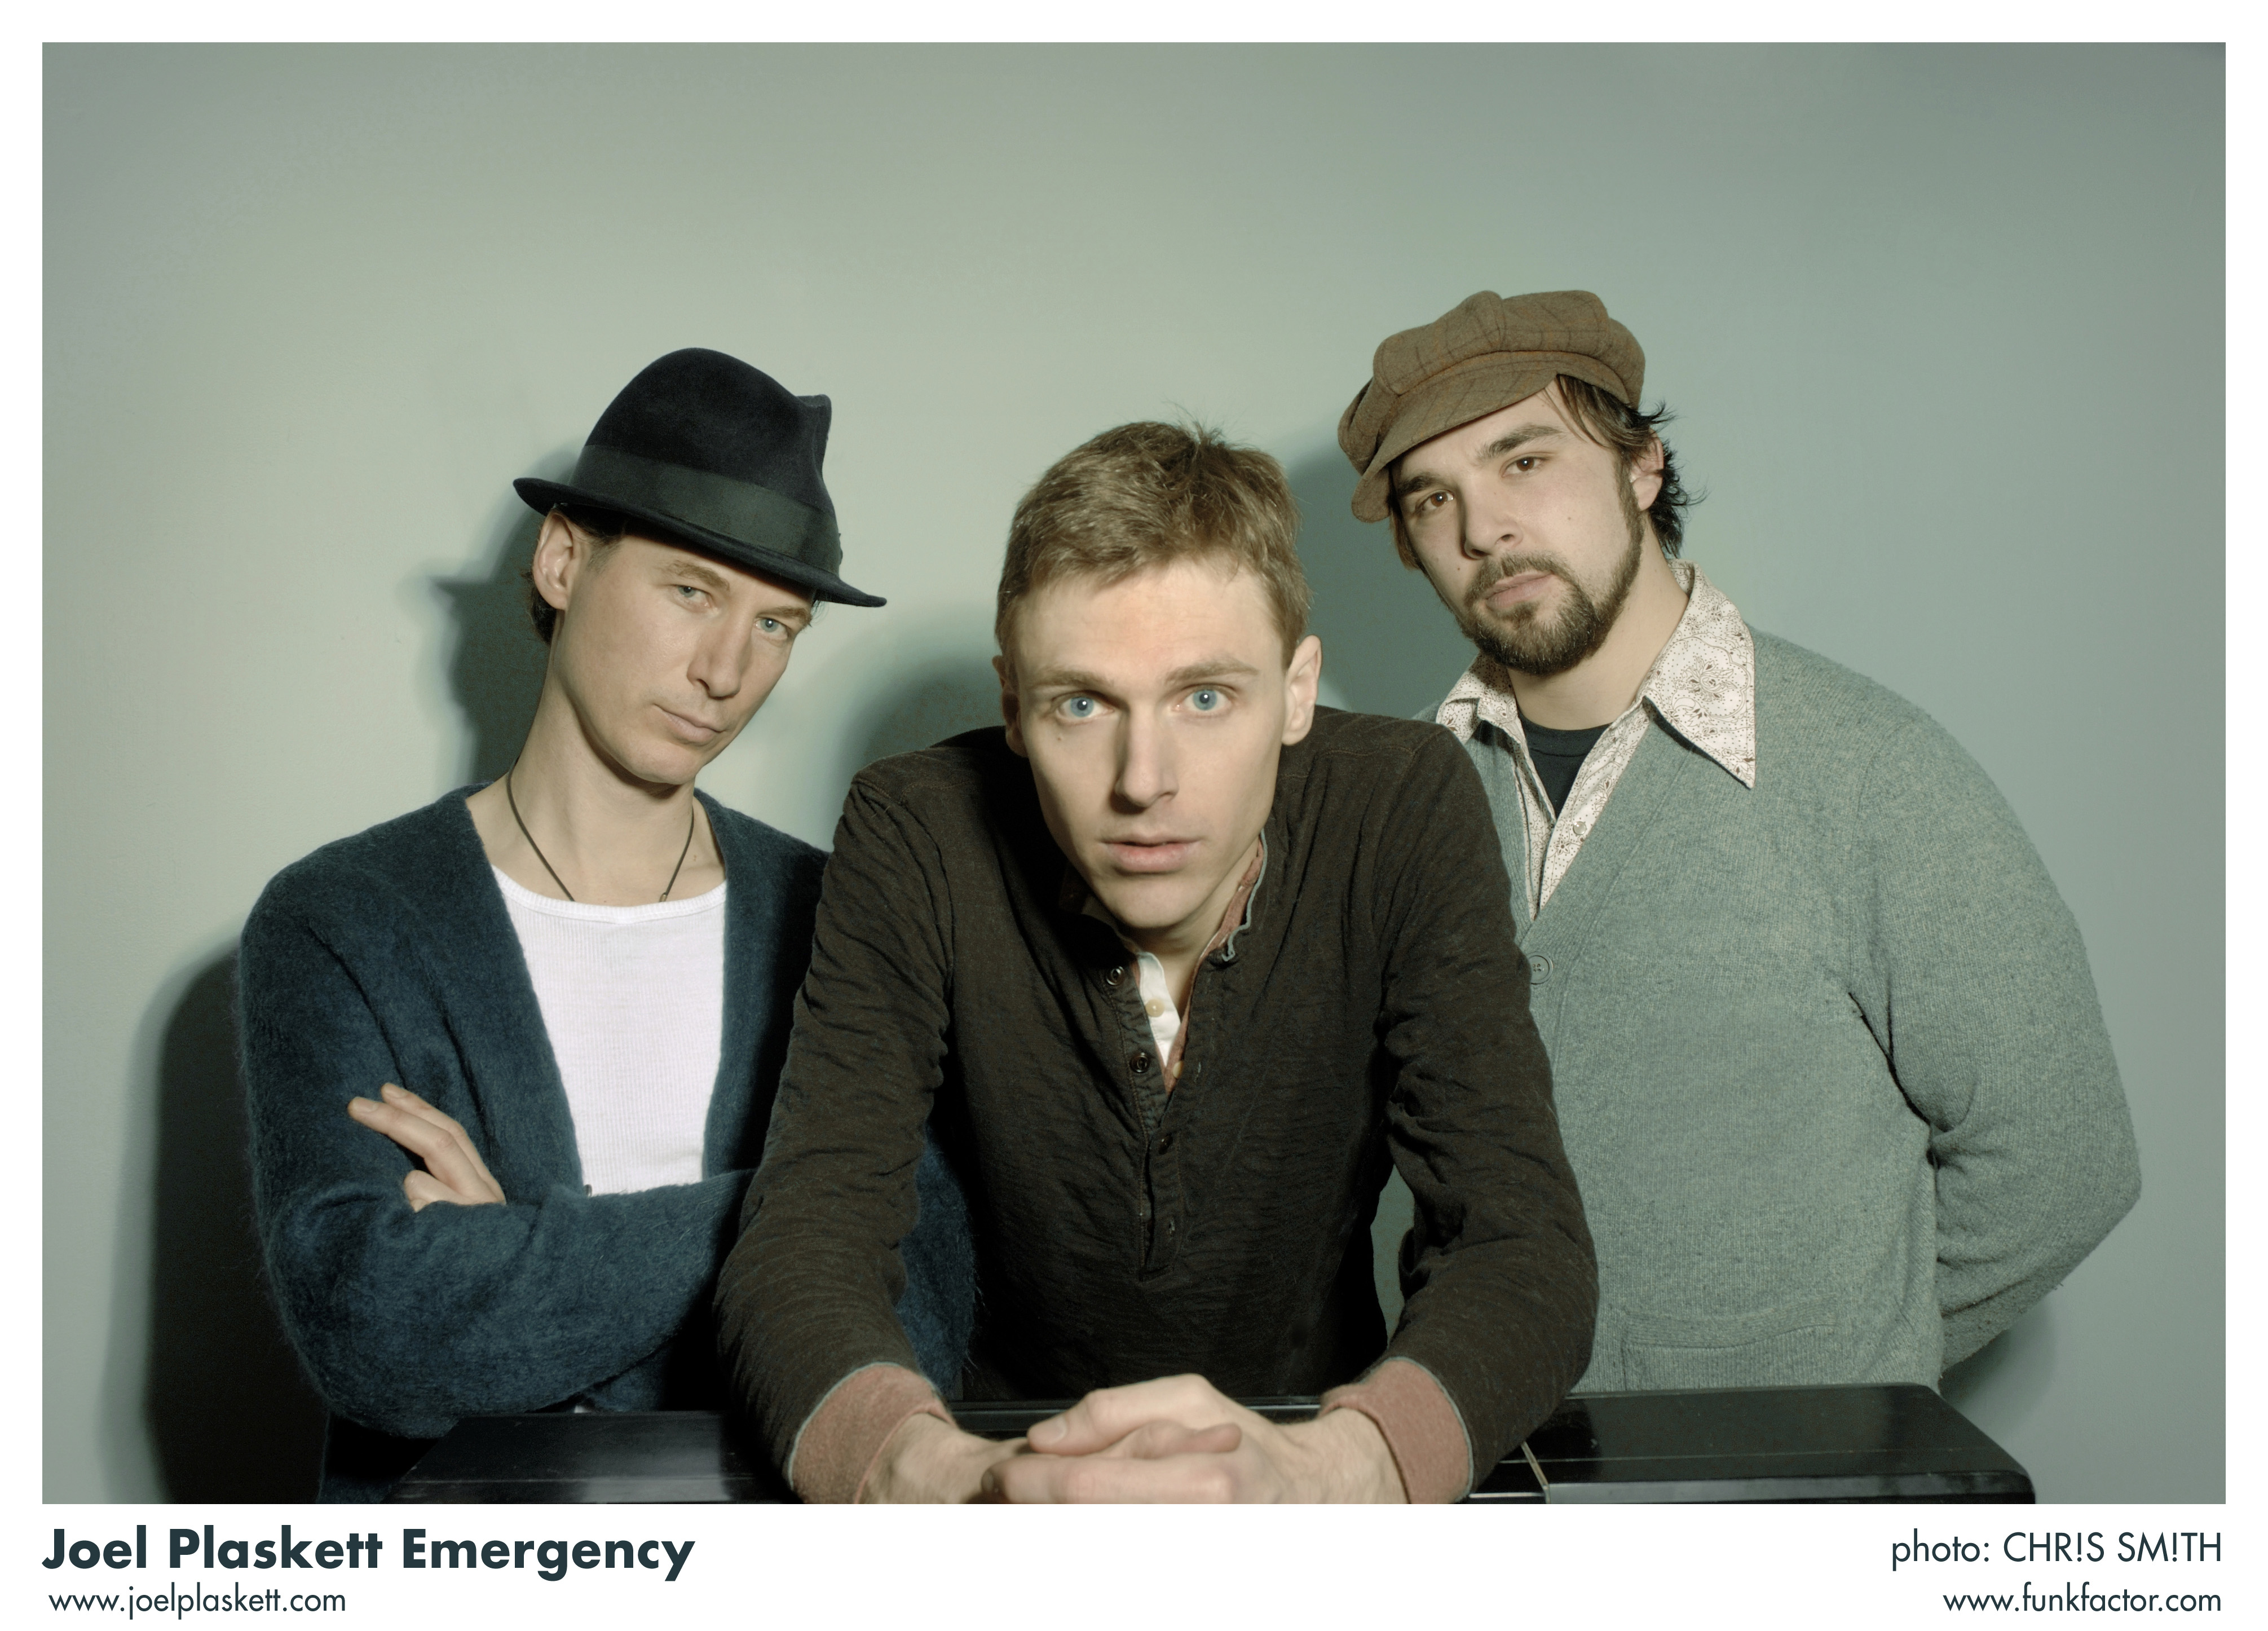 The Joel Plaskett Emergency Photo